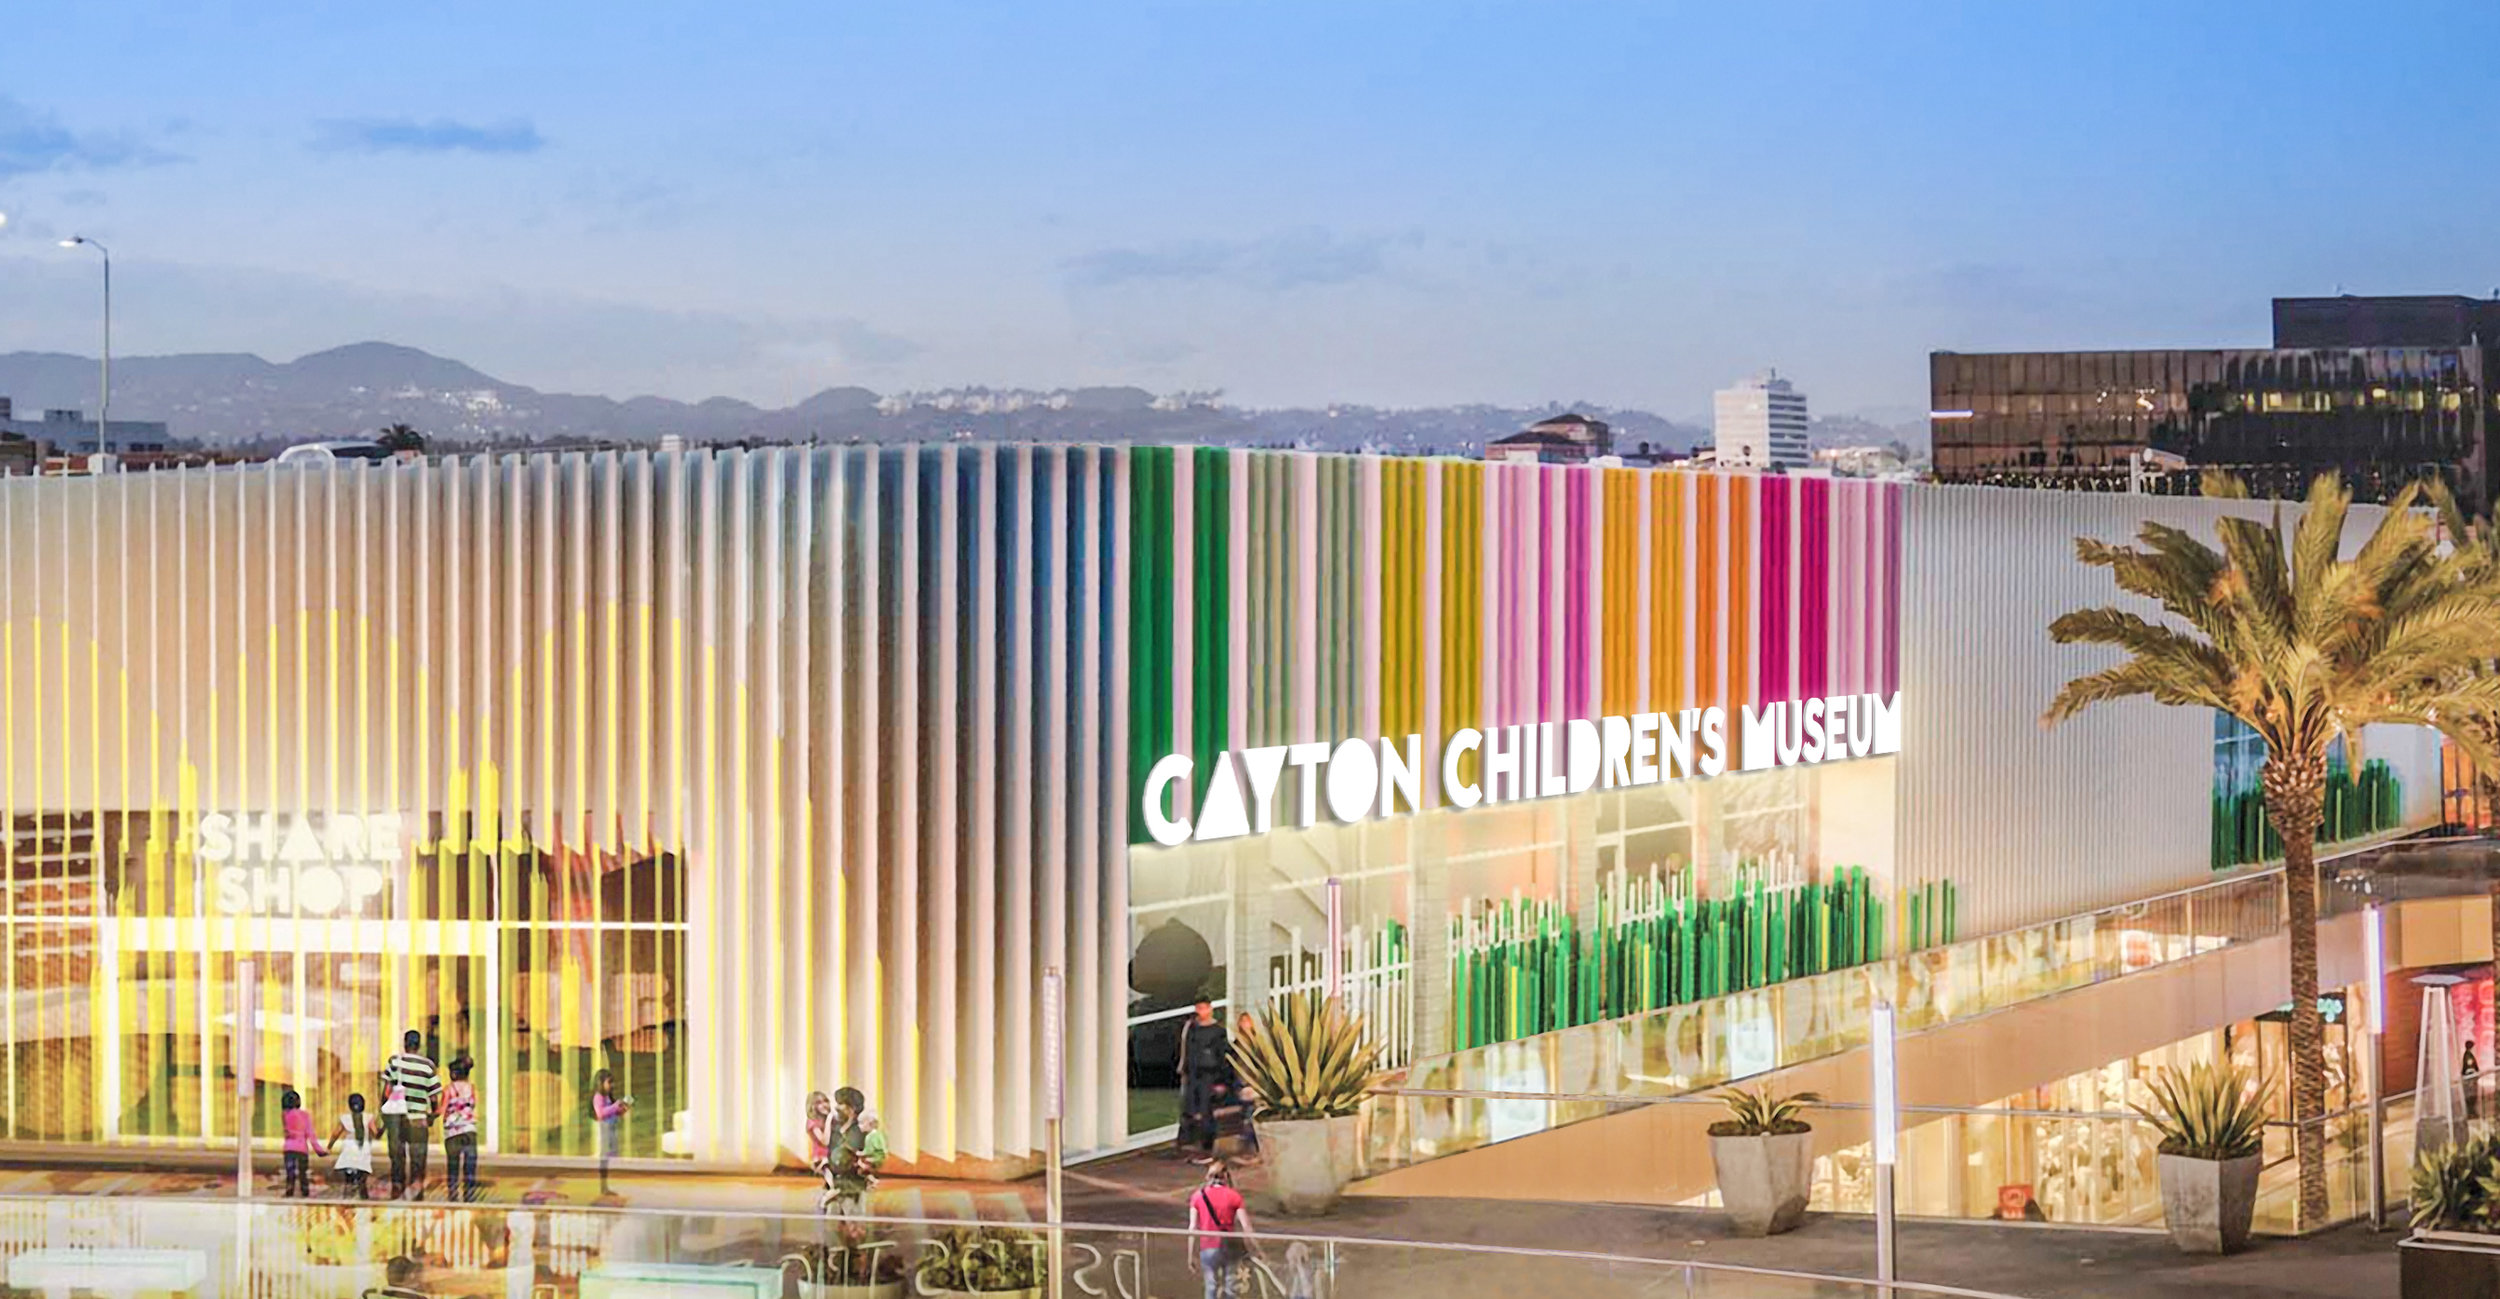 Rendering of the new Cayton Children's Museum at Santa Monica Place